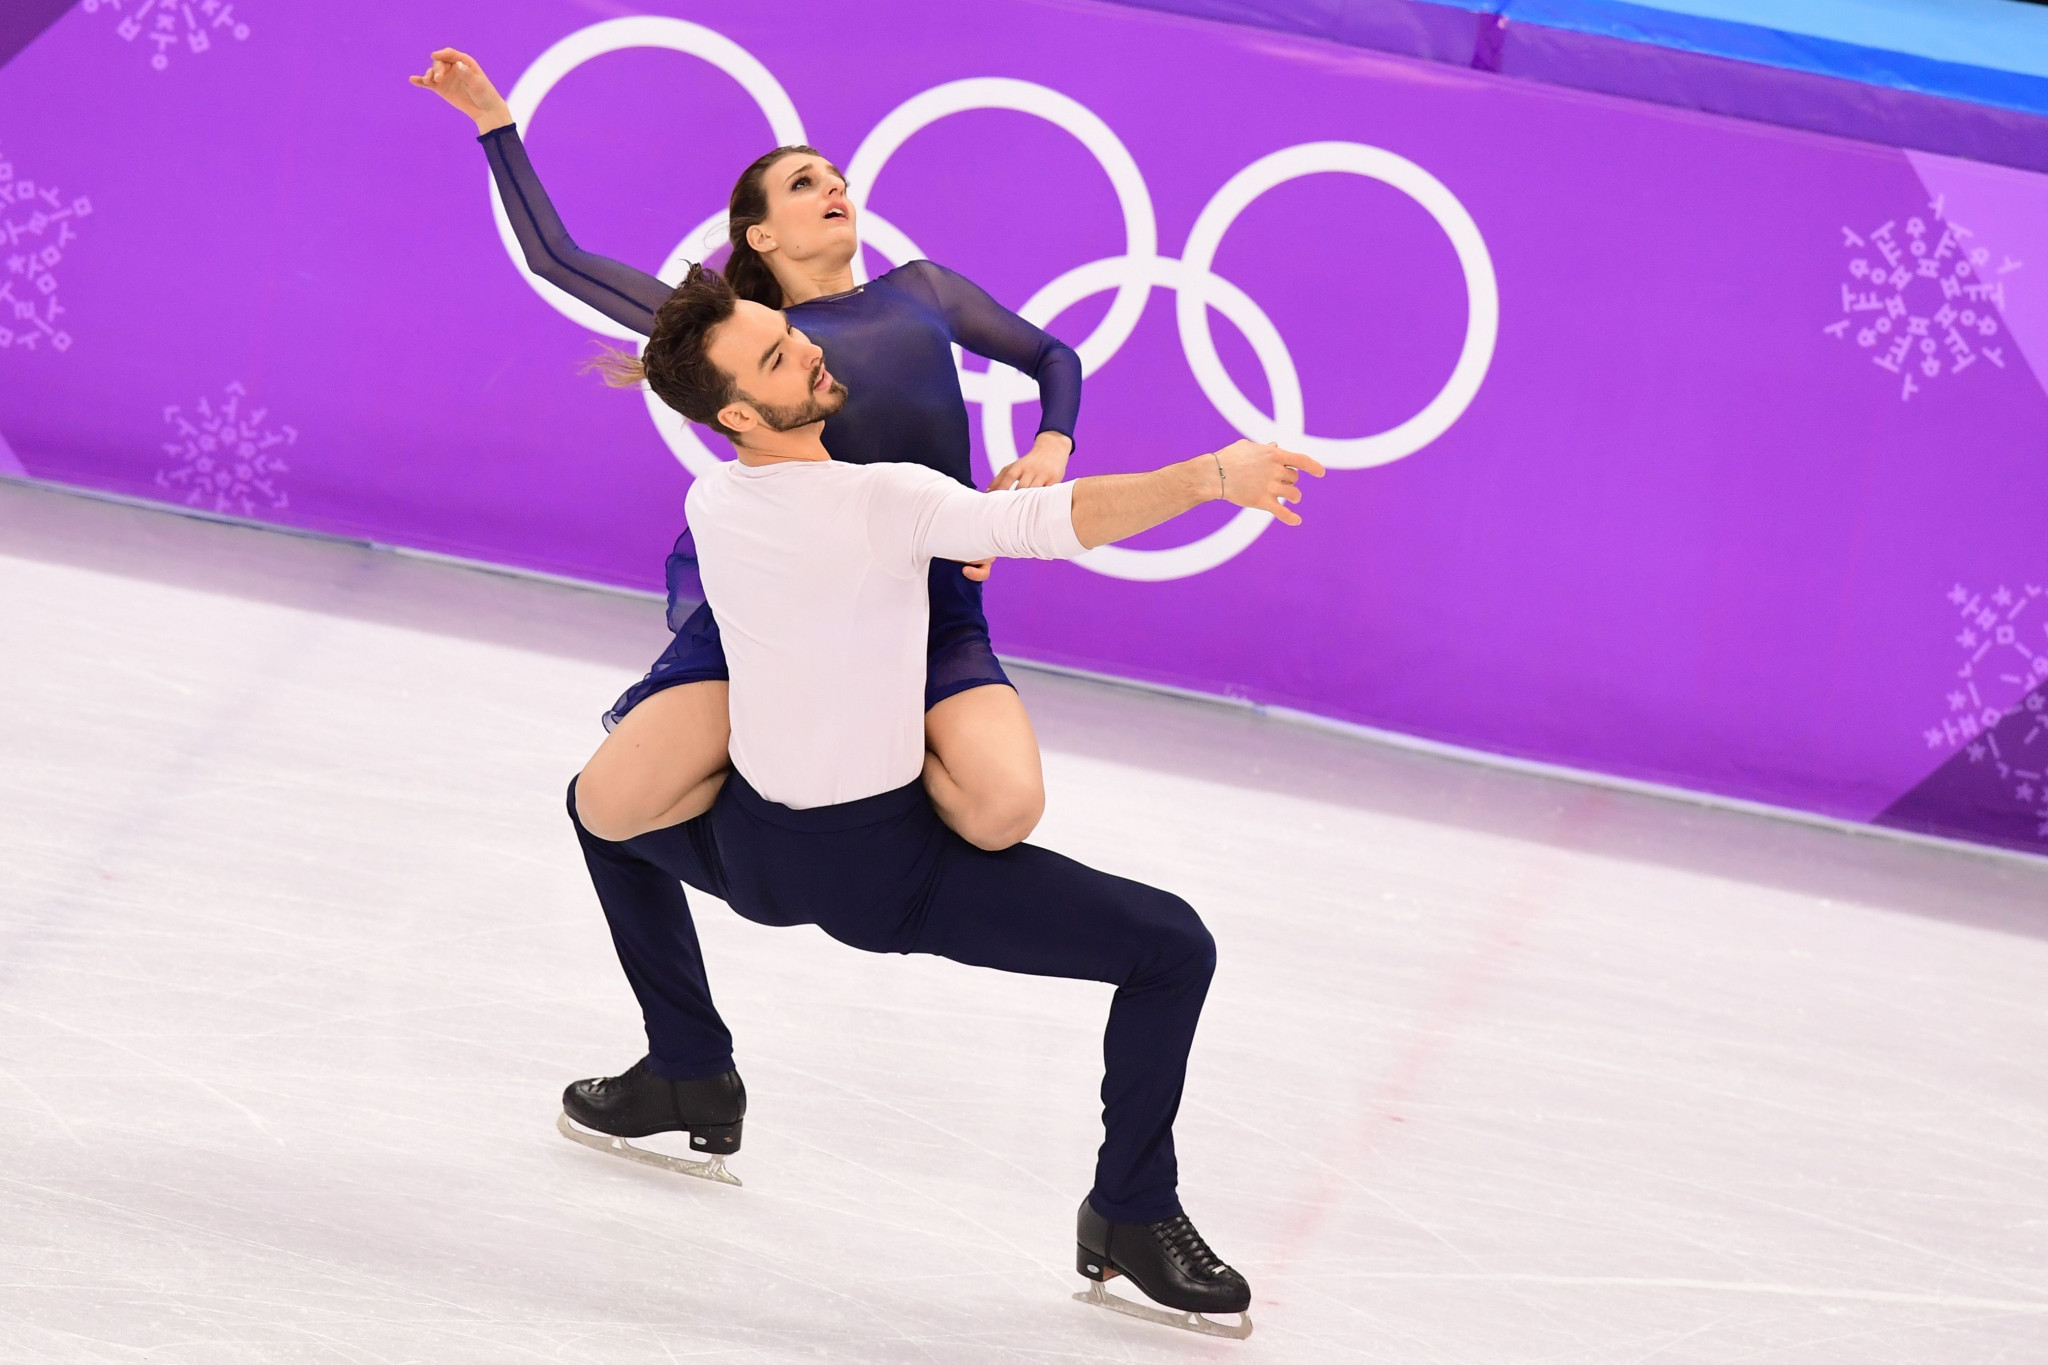 France's Gabriella Papadakis and Guillaume Cizeron claimed the silver medal ©Getty Images